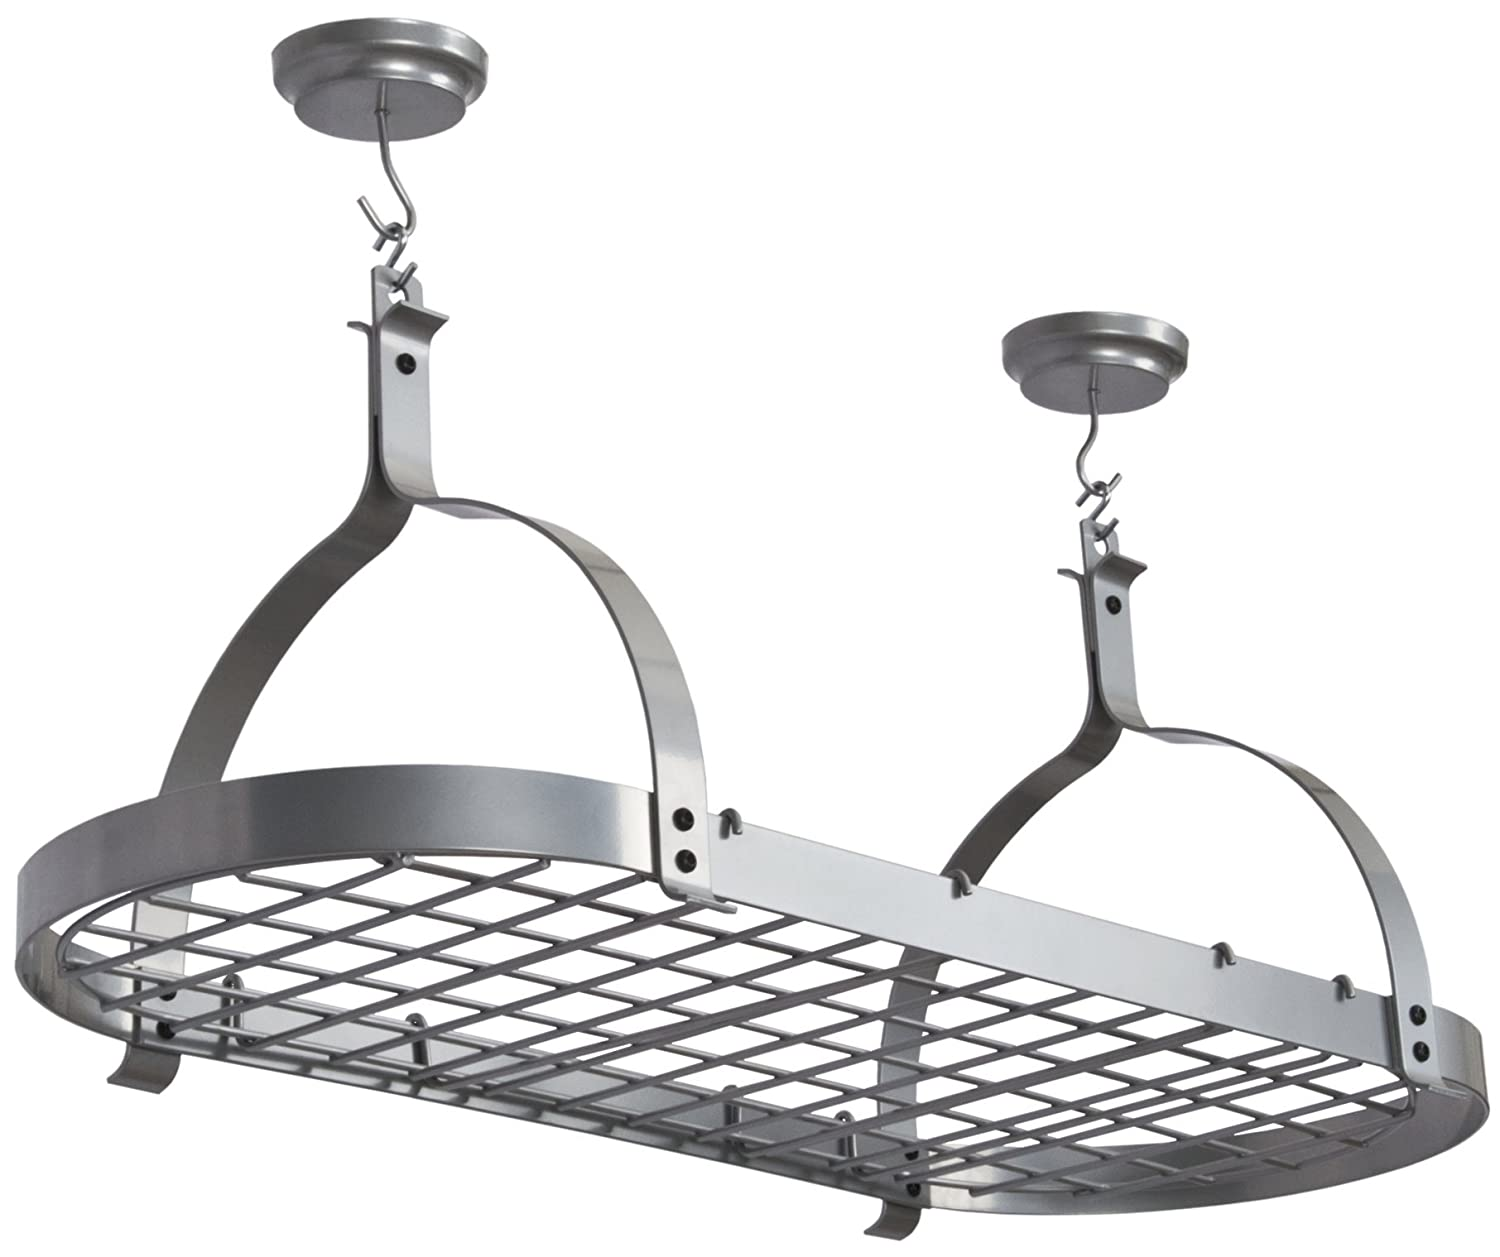 Enclume MPO 01 SS PC RACK IT UP Oval Ceiling Rack, Silver 42